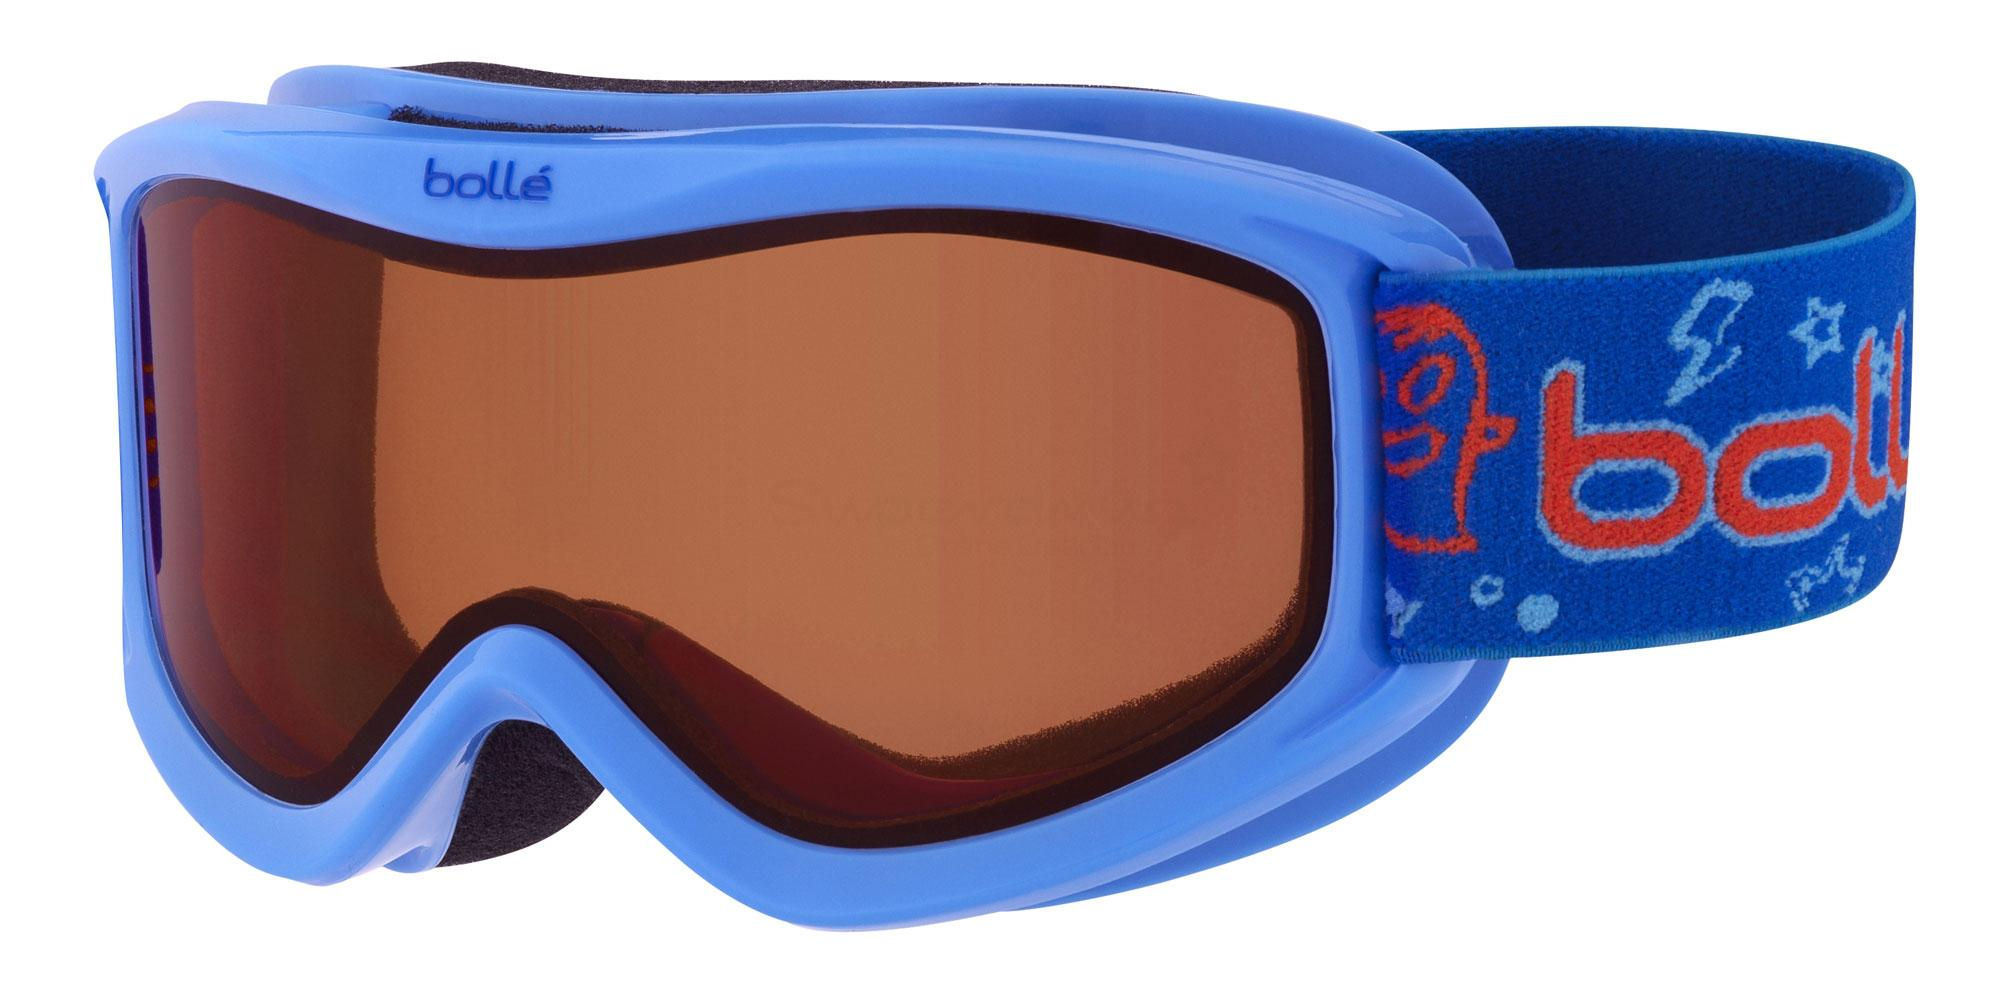 21514 AMP (3-8 years) Goggles, Bolle KIDS